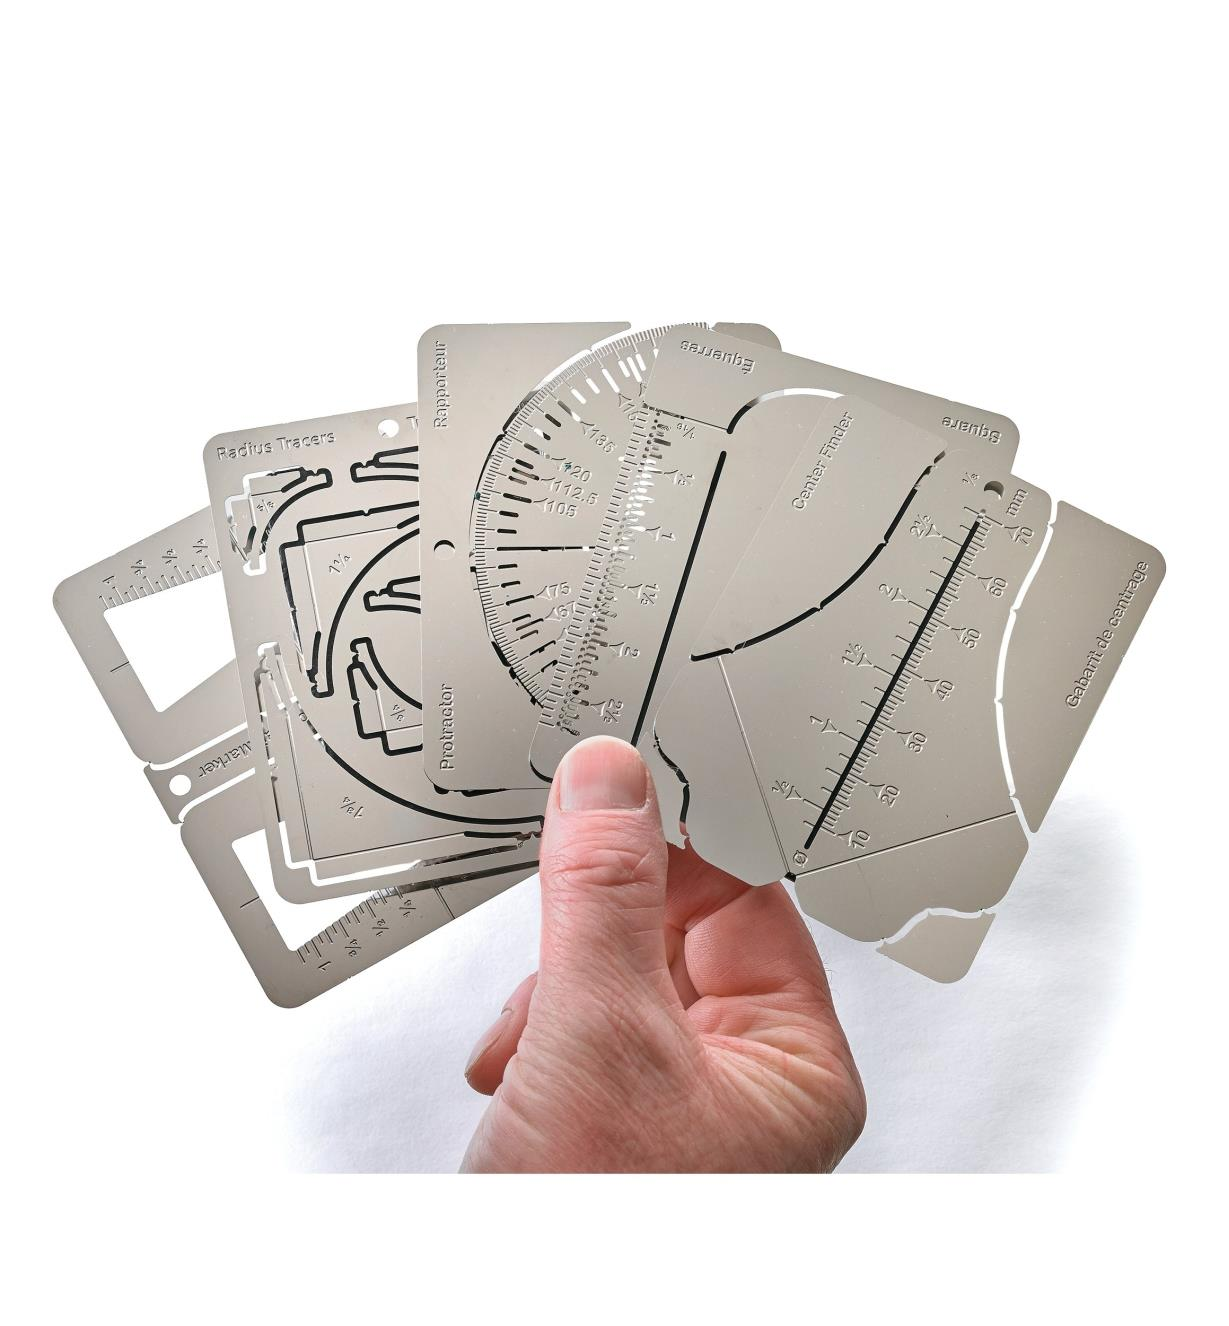 Wallet Tool Cards the way they are supplied, as flat stainless-steel sheets